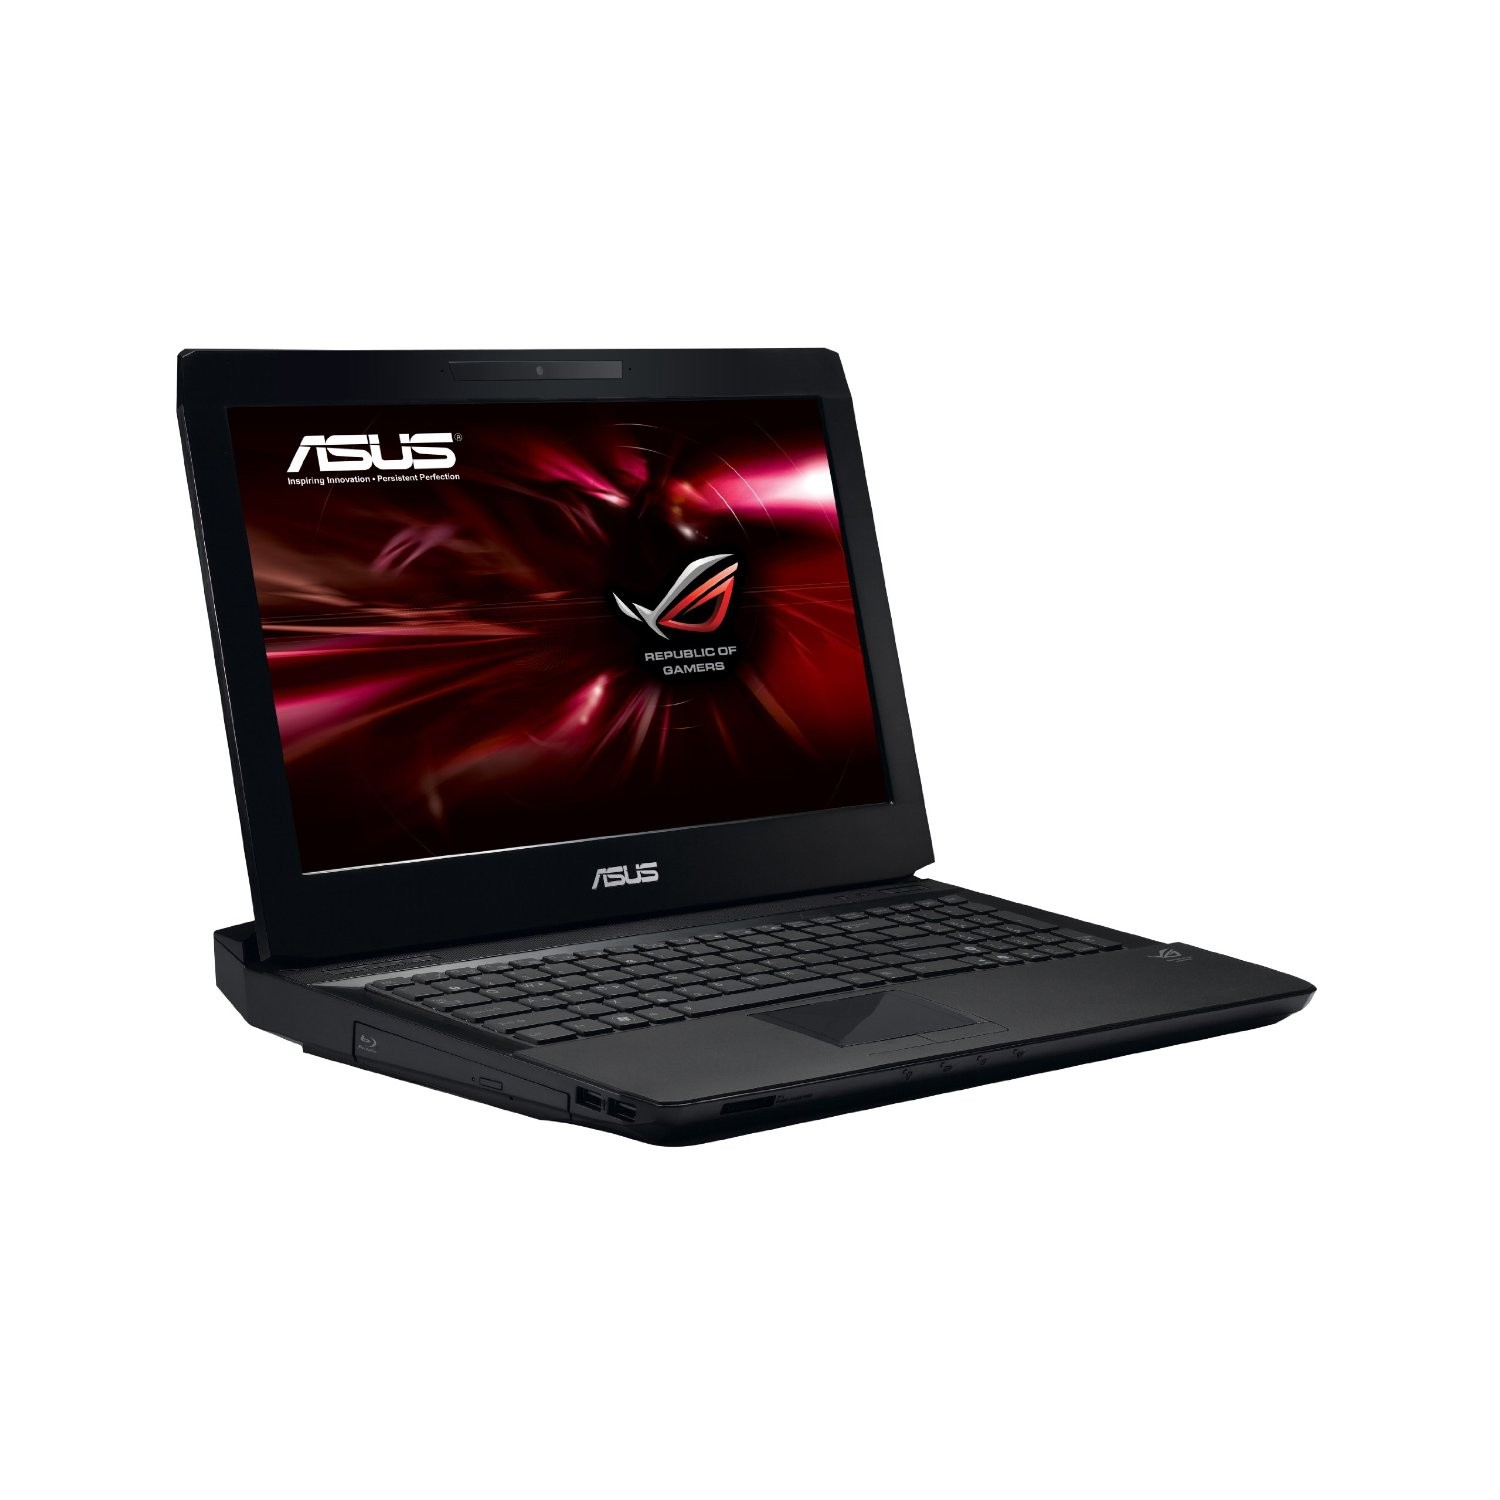 ASUS G53SX INTEL MANAGEMENT DOWNLOAD DRIVER